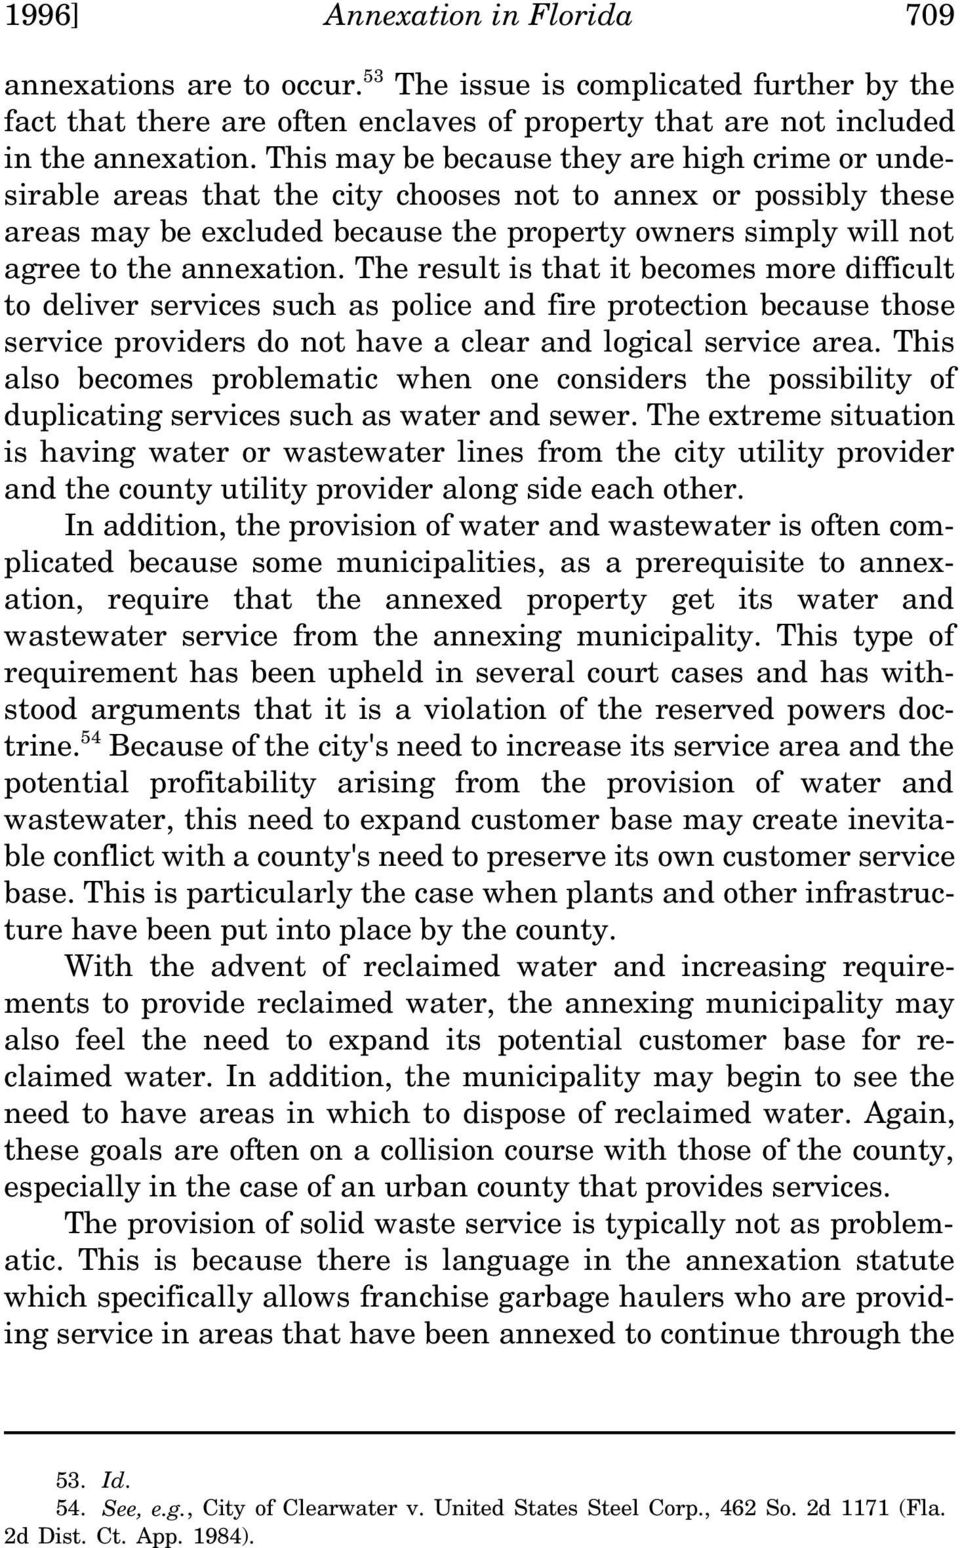 annexation. The result is that it becomes more difficult to deliver services such as police and fire protection because those service providers do not have a clear and logical service area.